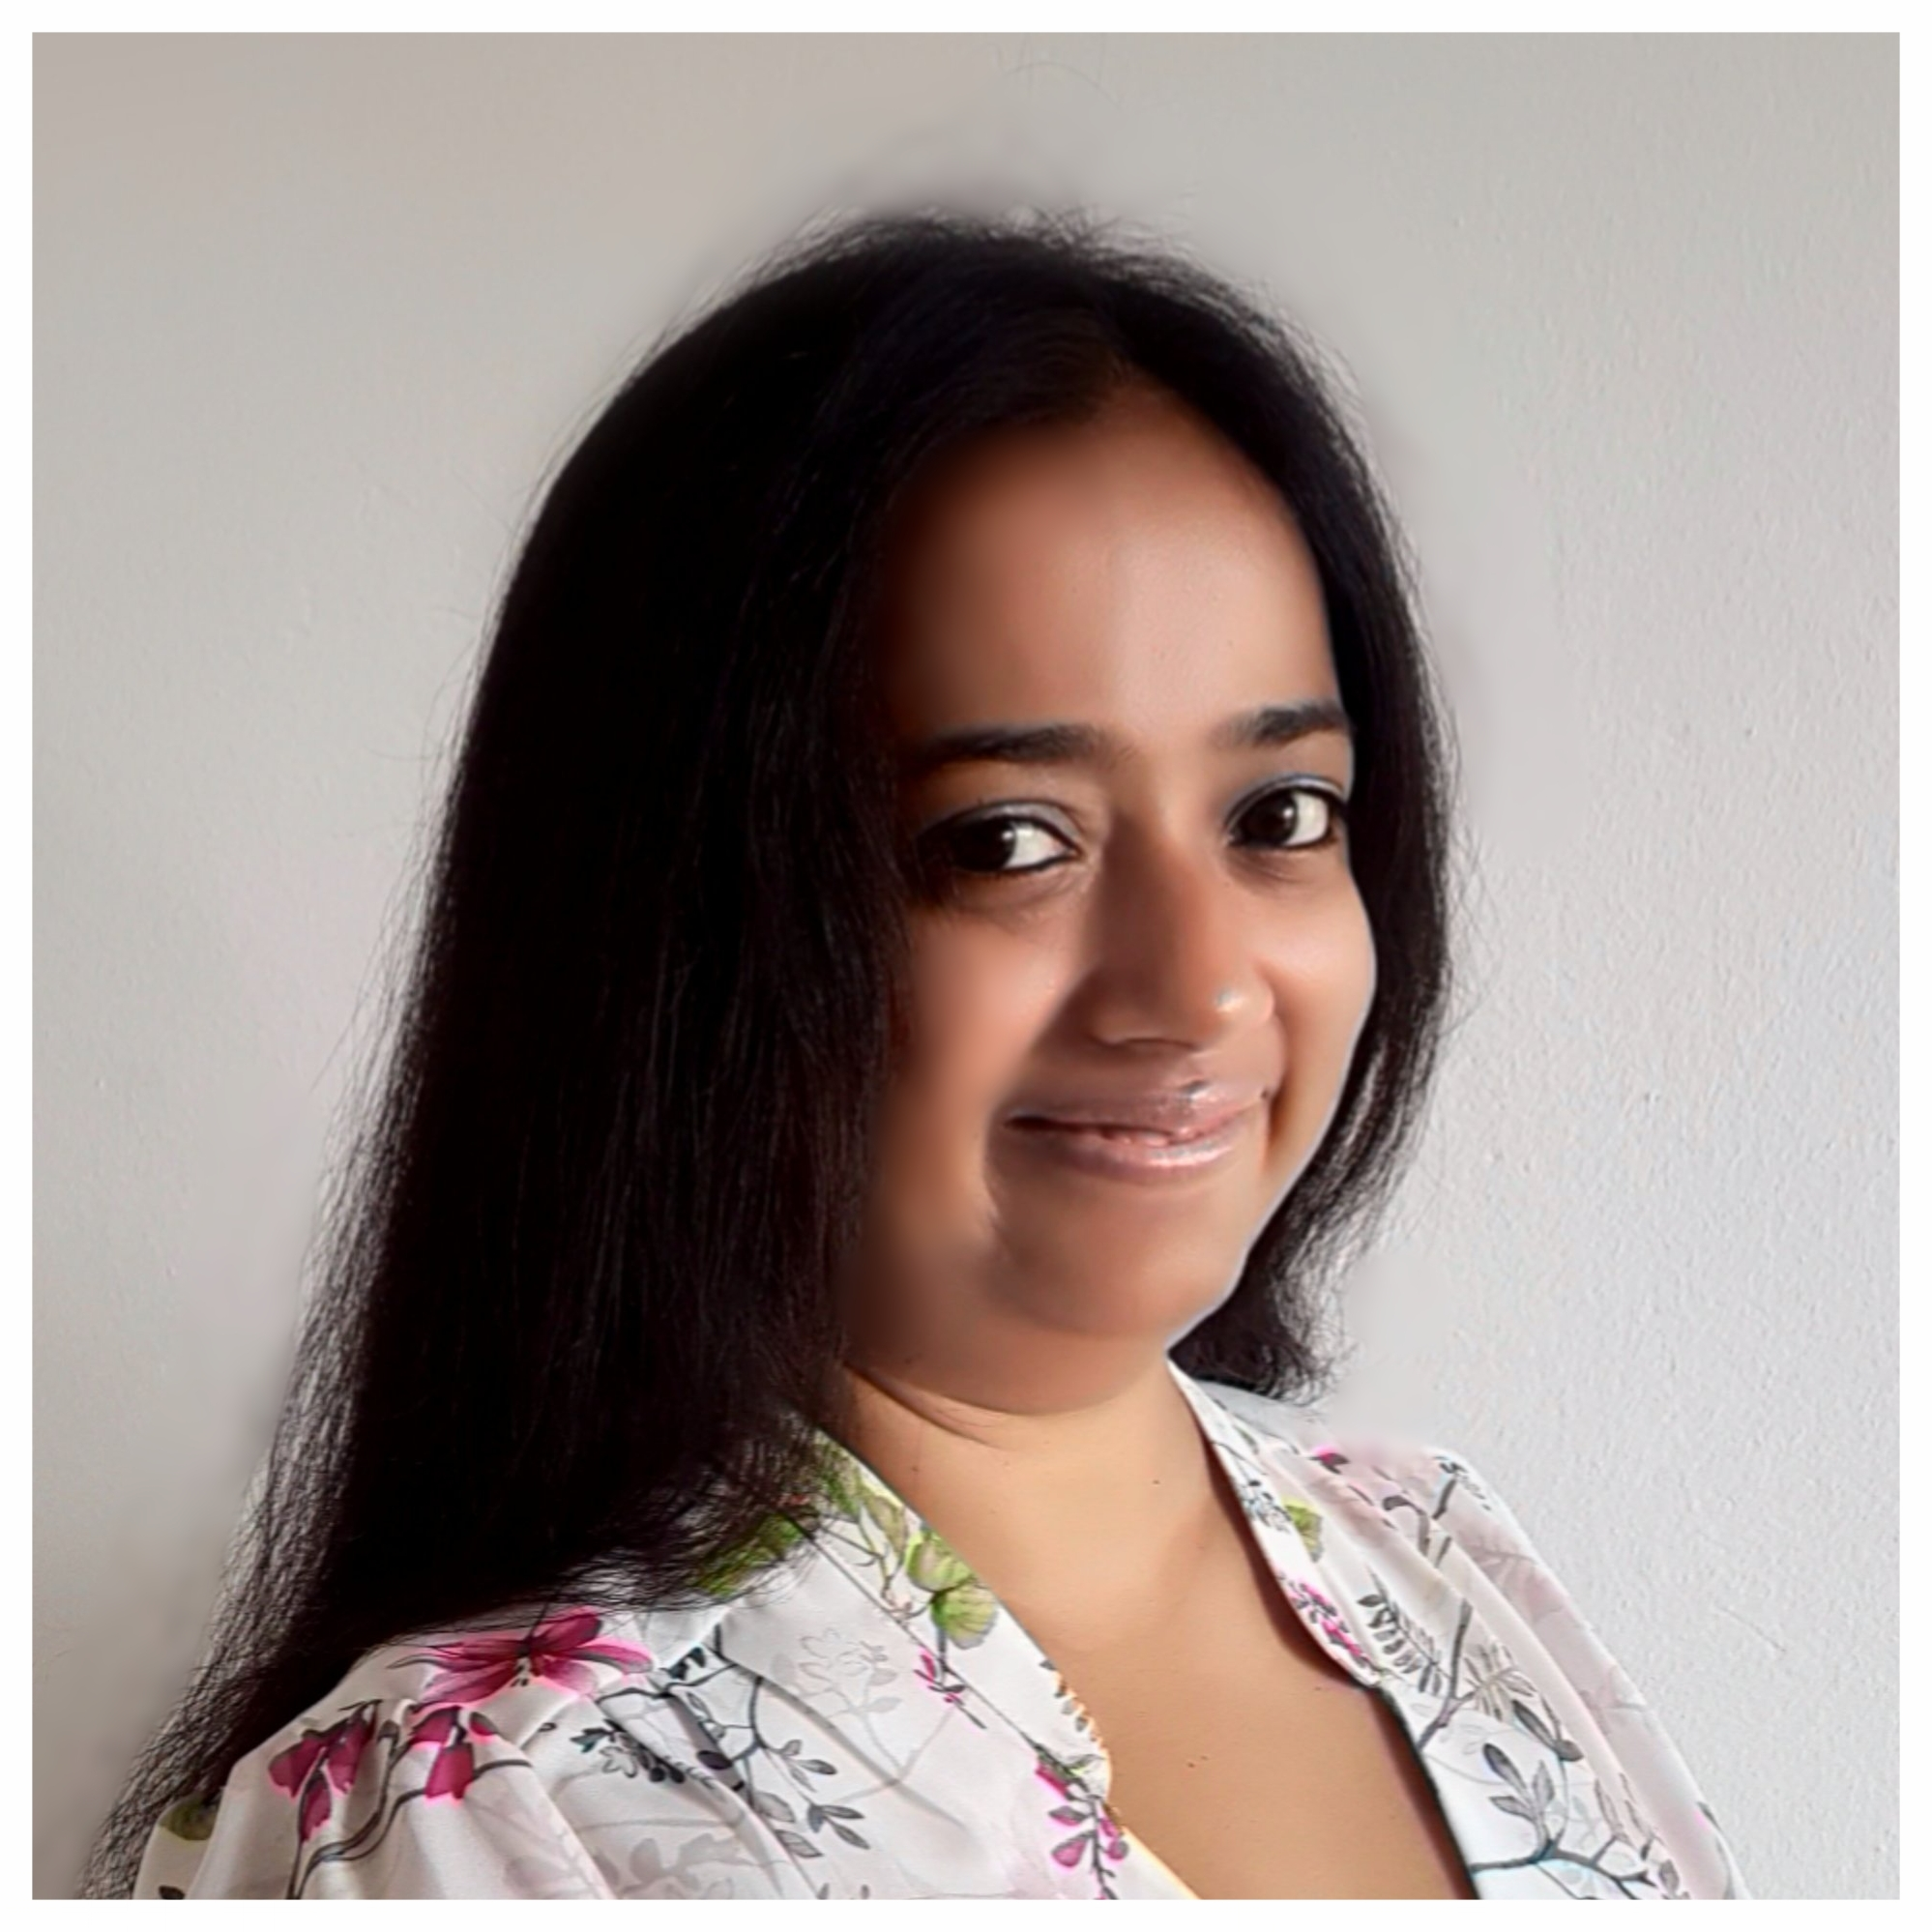 Aditi Kulkarni - Counselling PsychologistI am an English-speaking psychologist located in Berlin. I offer both face-to-face and online (Skype) counselling sessions for coping with challenges, adjusting to change and learning to manage difficult feelings & behaviours.